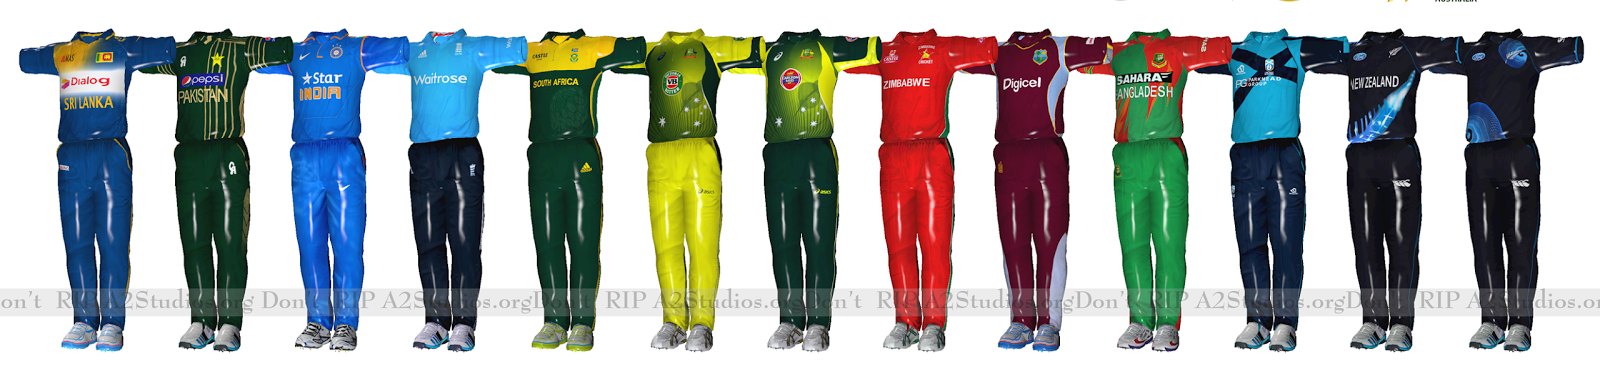 odi-kits-pack-2014-for-cricket-07